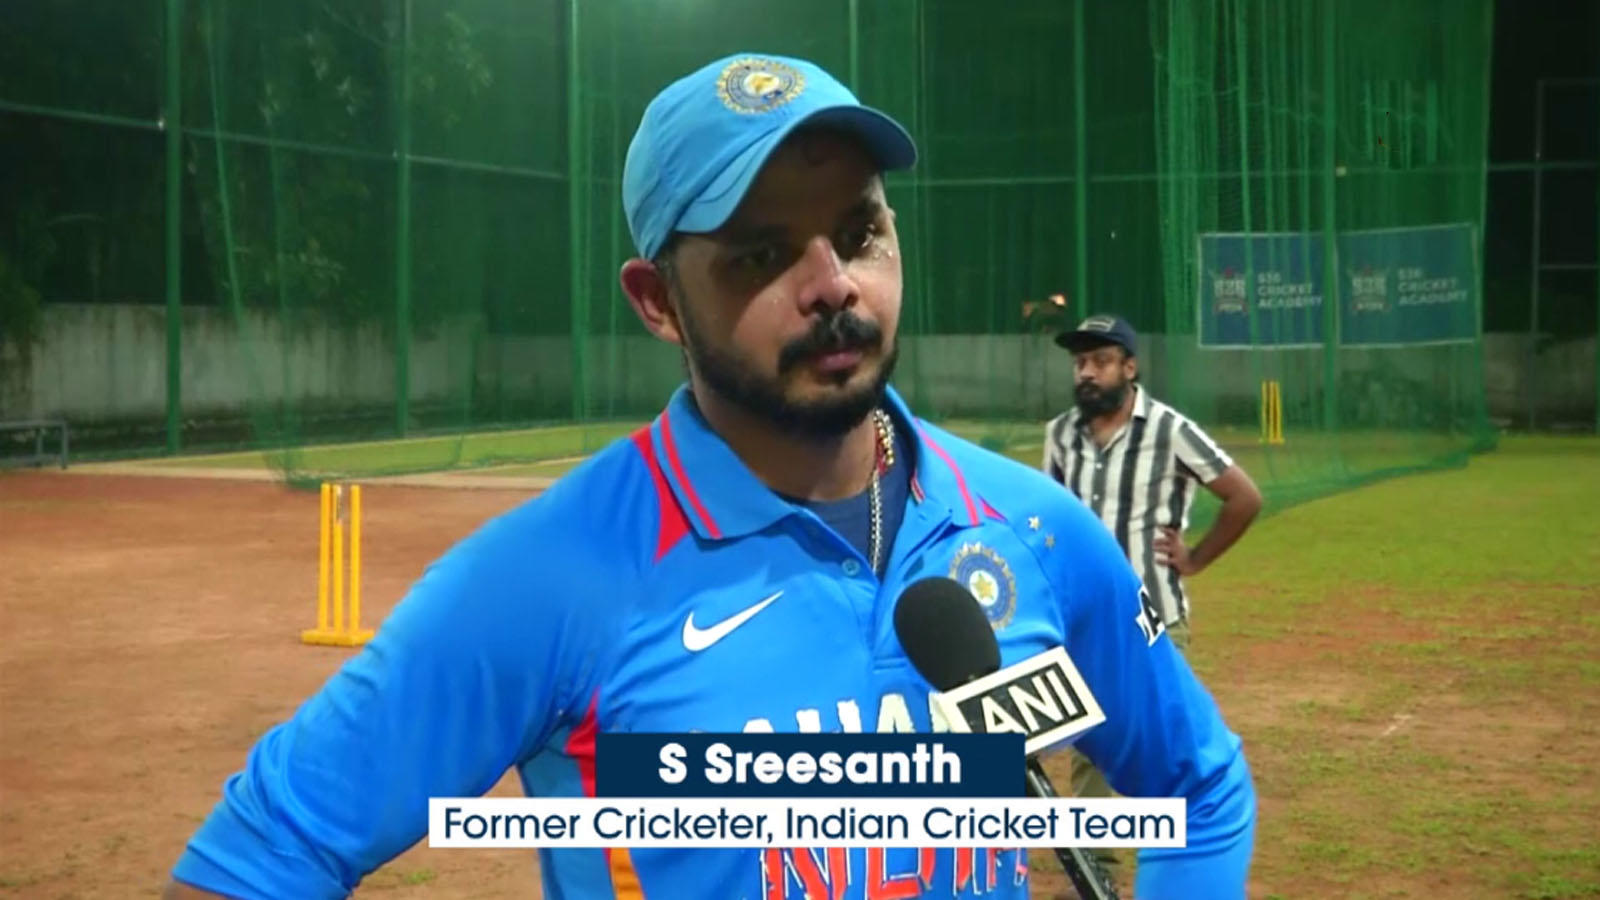 after-7-year-ban-for-alleged-ipl-spot-fixing-sreesanth-to-play-competitive-cricket